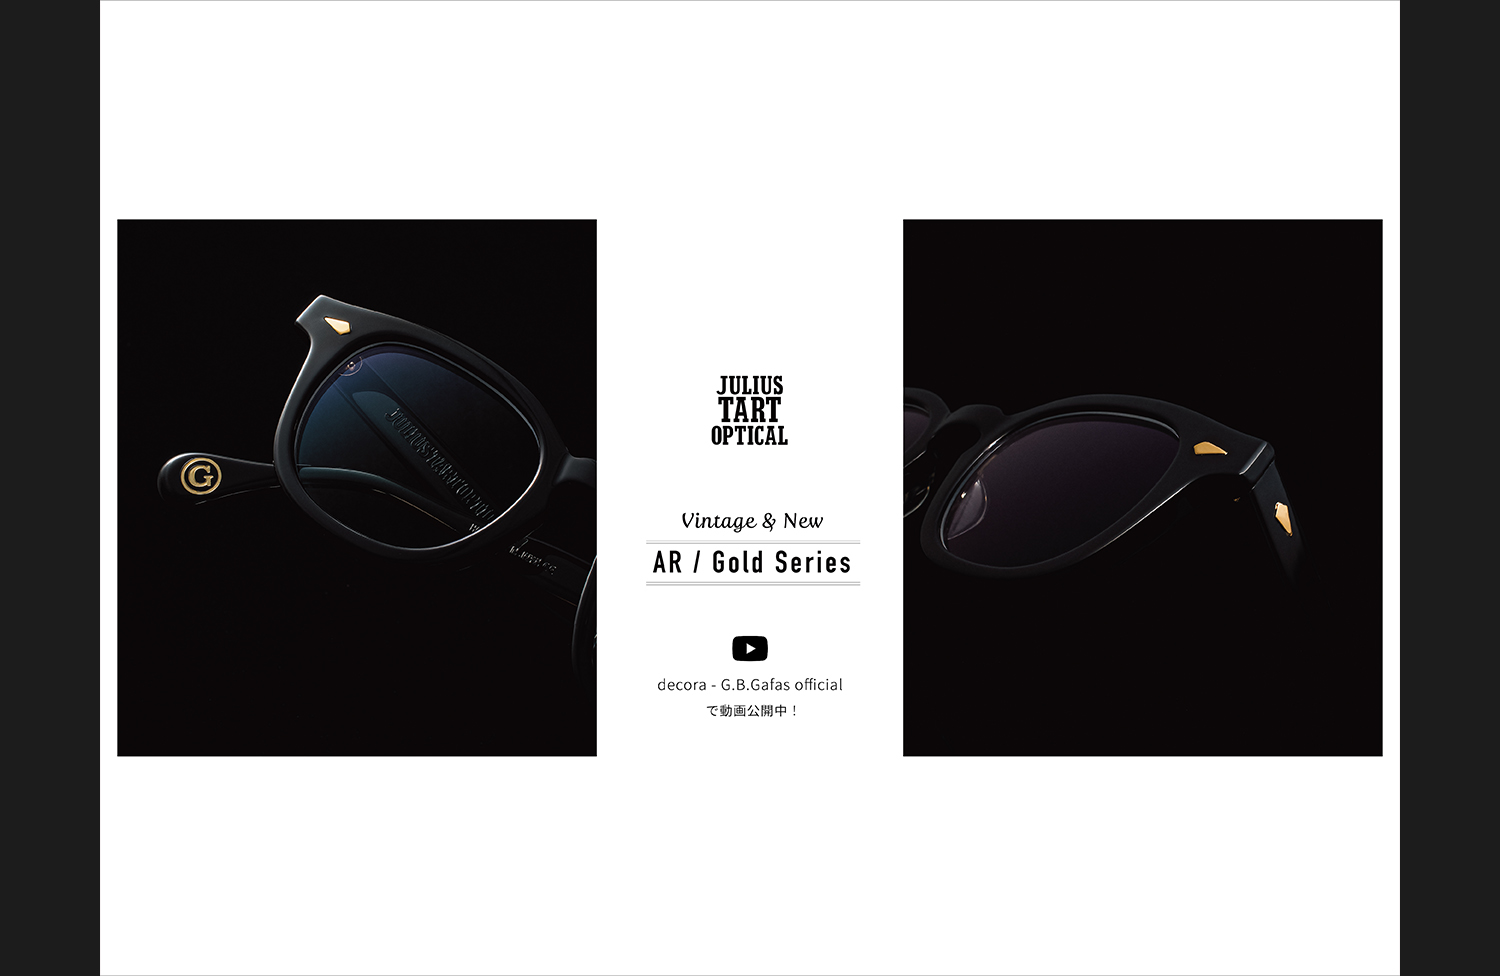 JULIUS TART OPTICAL AR Gold Series